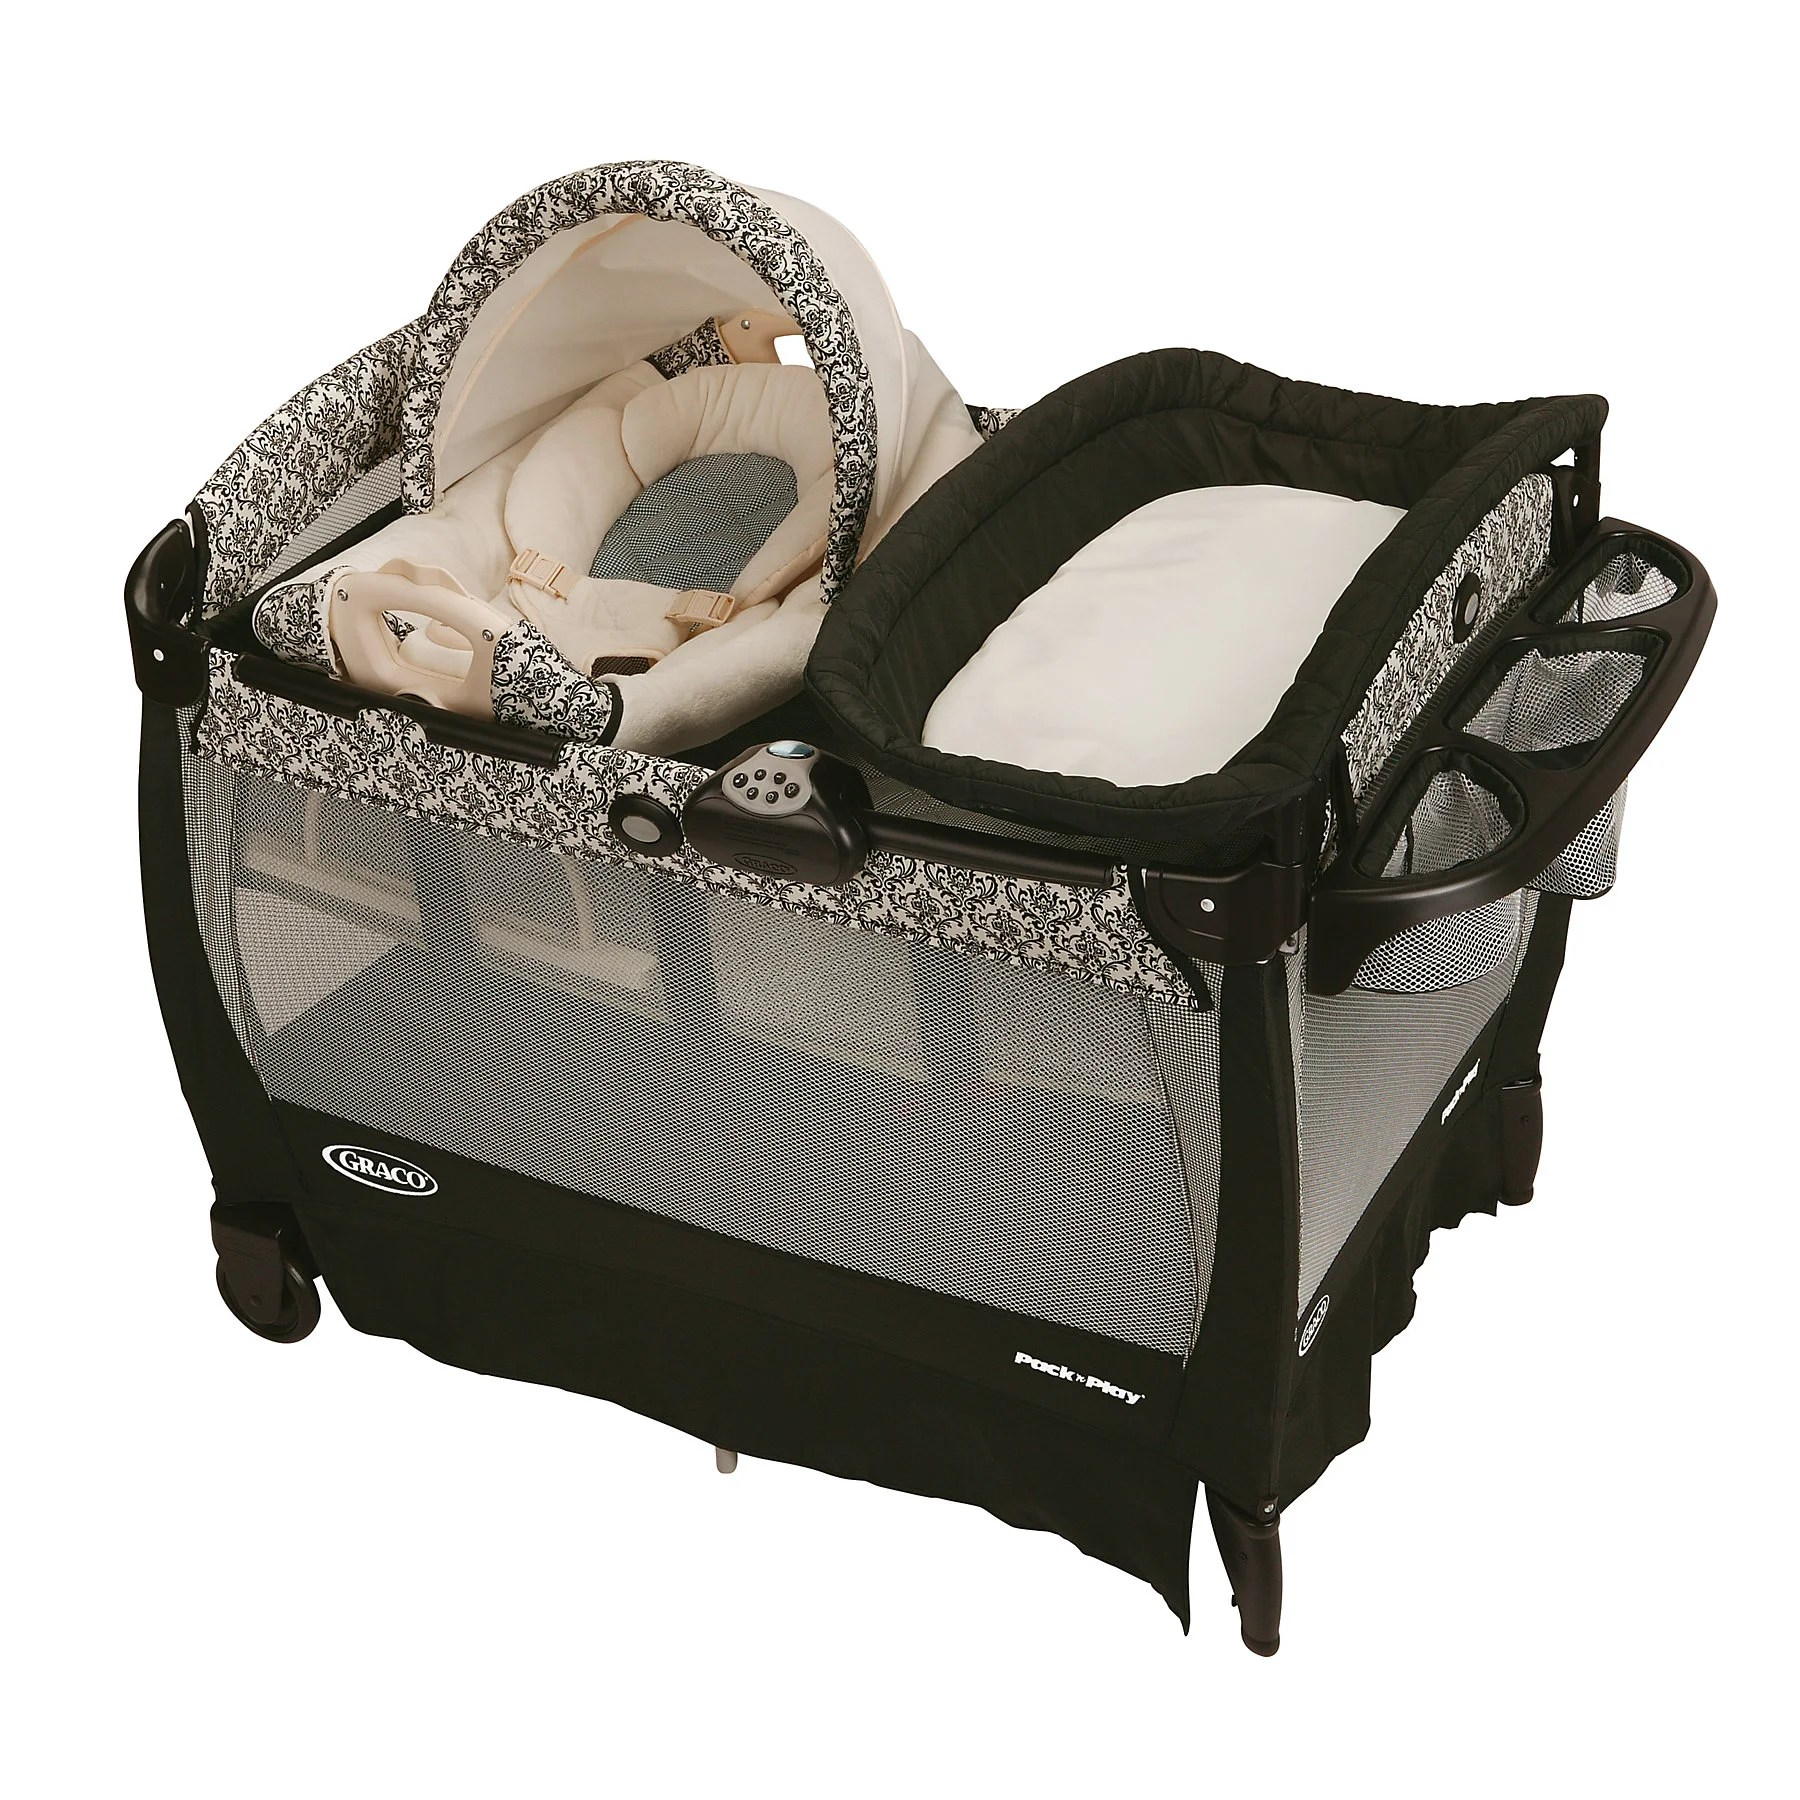 Graco Newborn Bassinet Graco Cuddle Cove Pack N Play Playard With Newborn Rocker And Changer In Rittenhouse